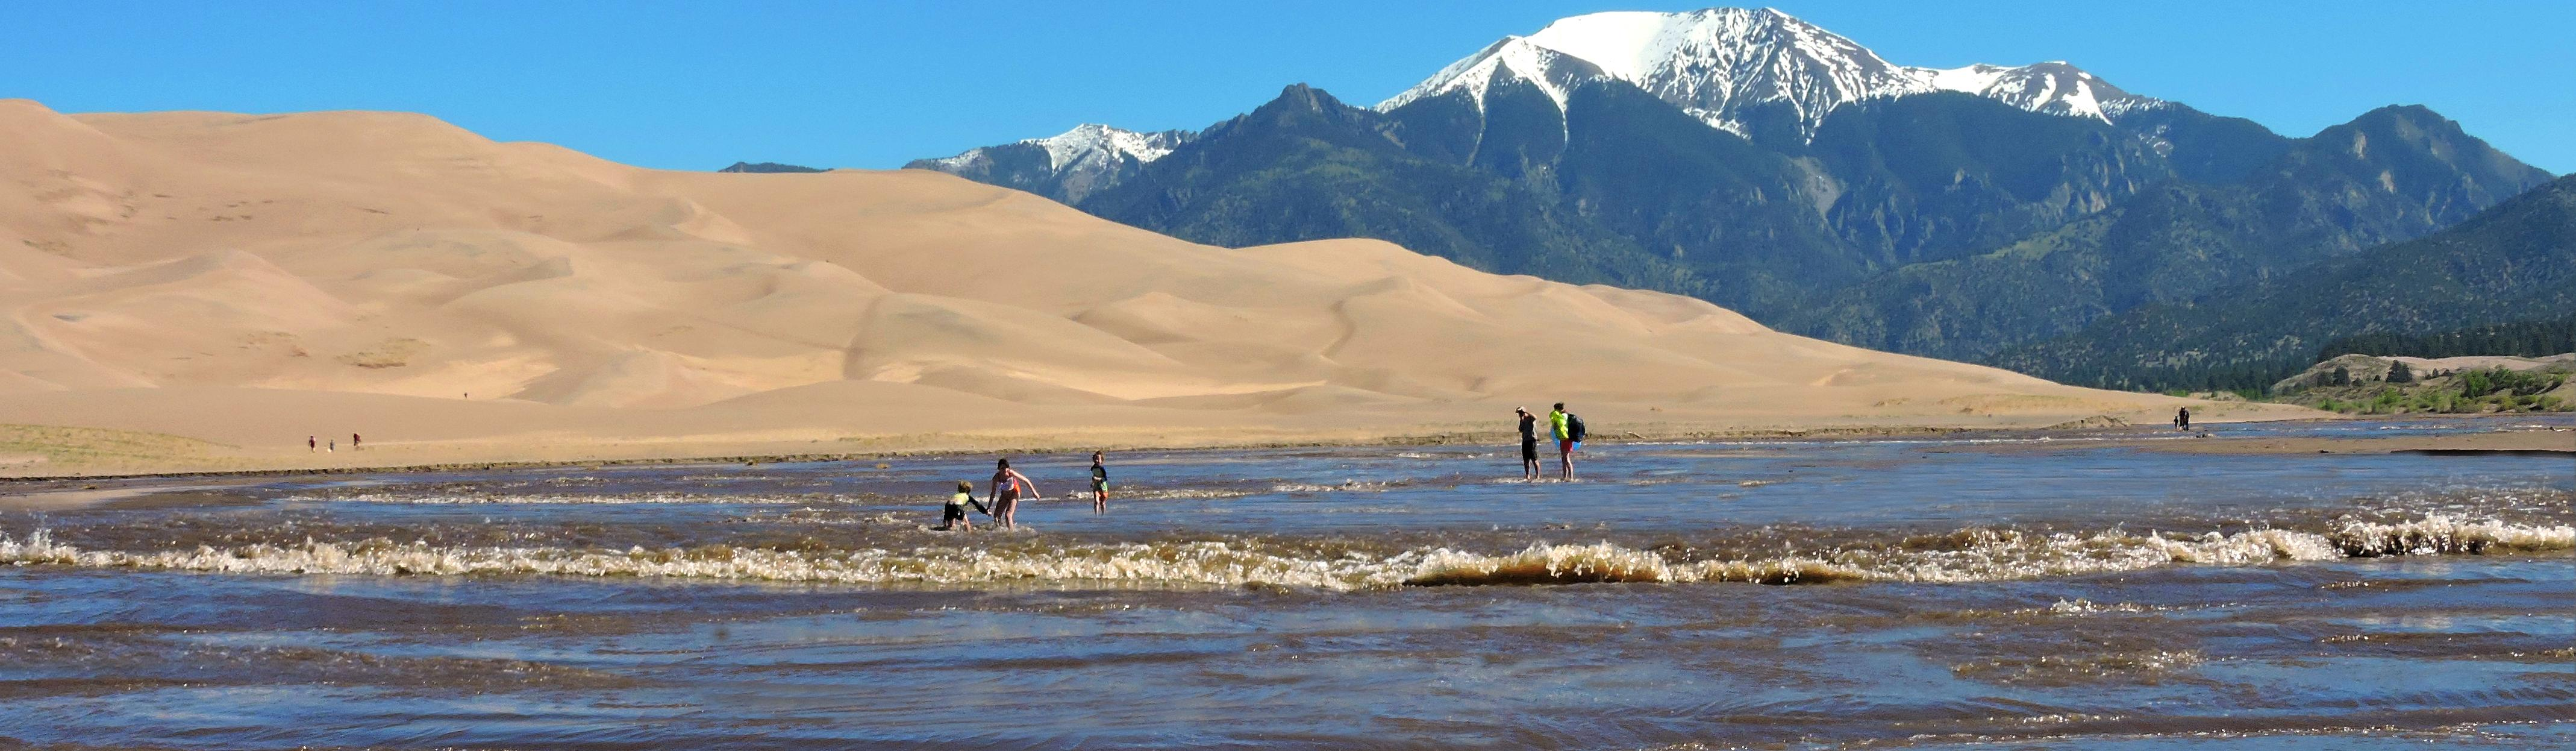 Great Sand Dunes National Park Preserve US National Park Service